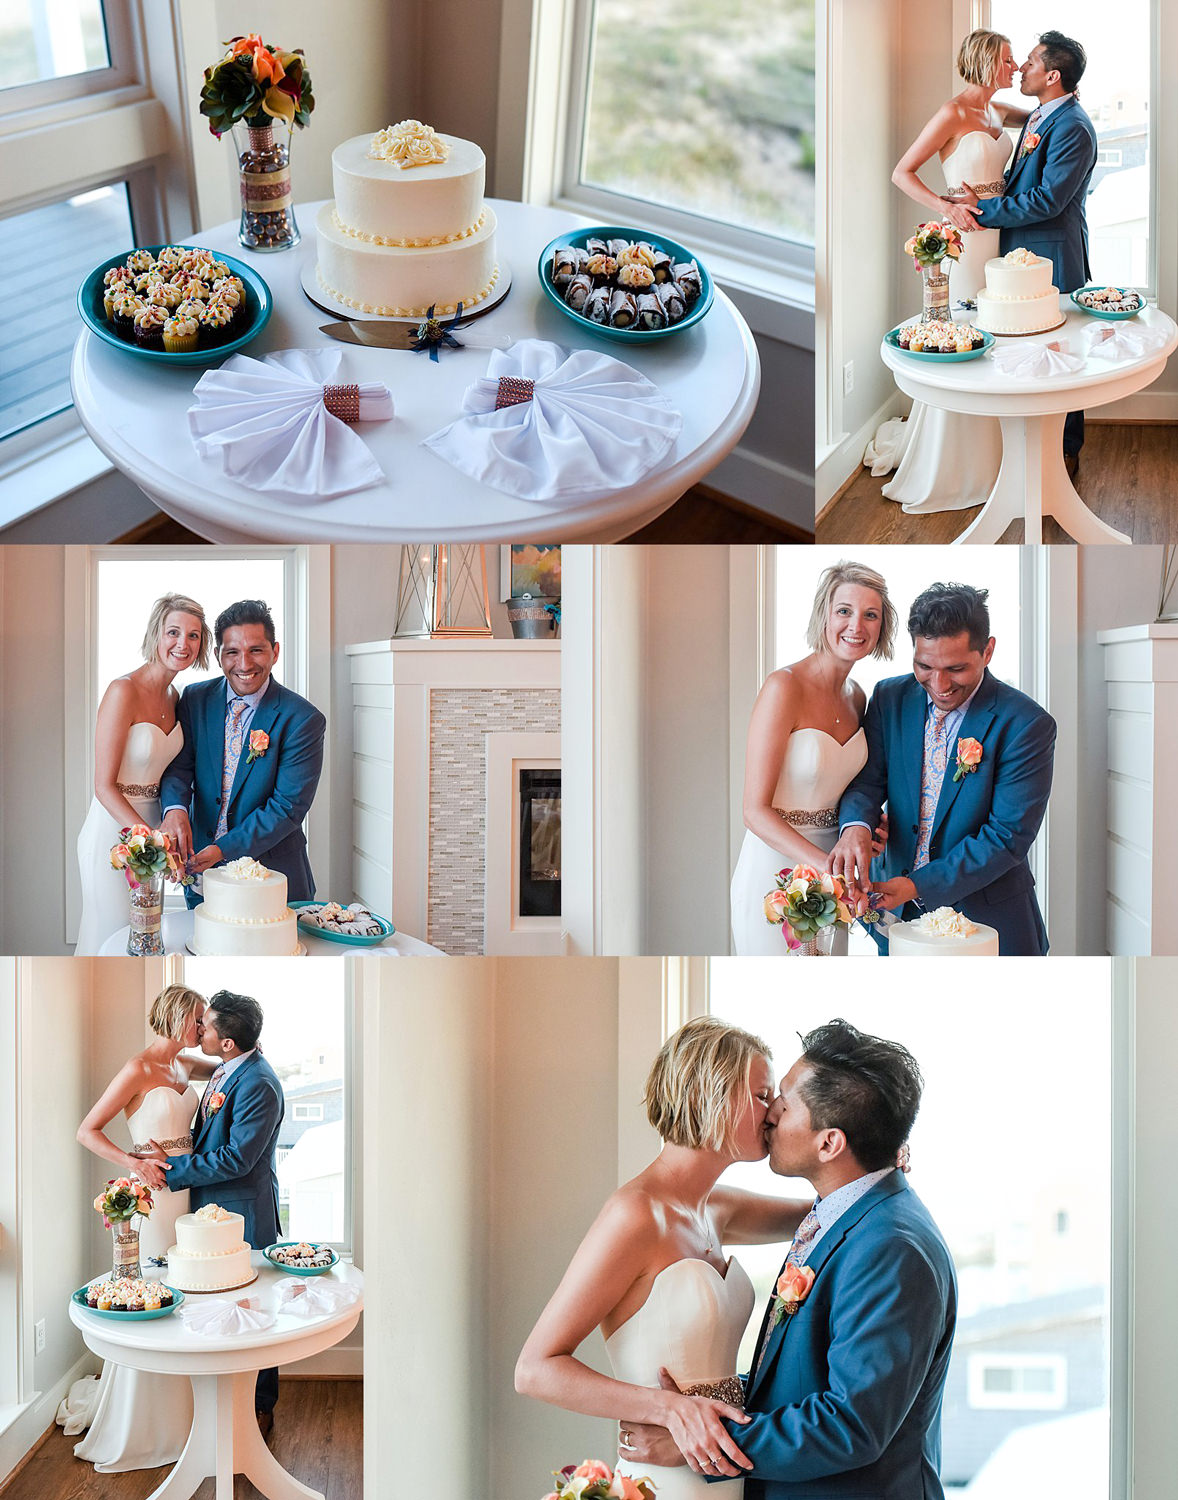 bride-and-groom-cut-the-cake-sandbridge-beach-wedding-melissa-bliss-photography-VA-weddings.jpg